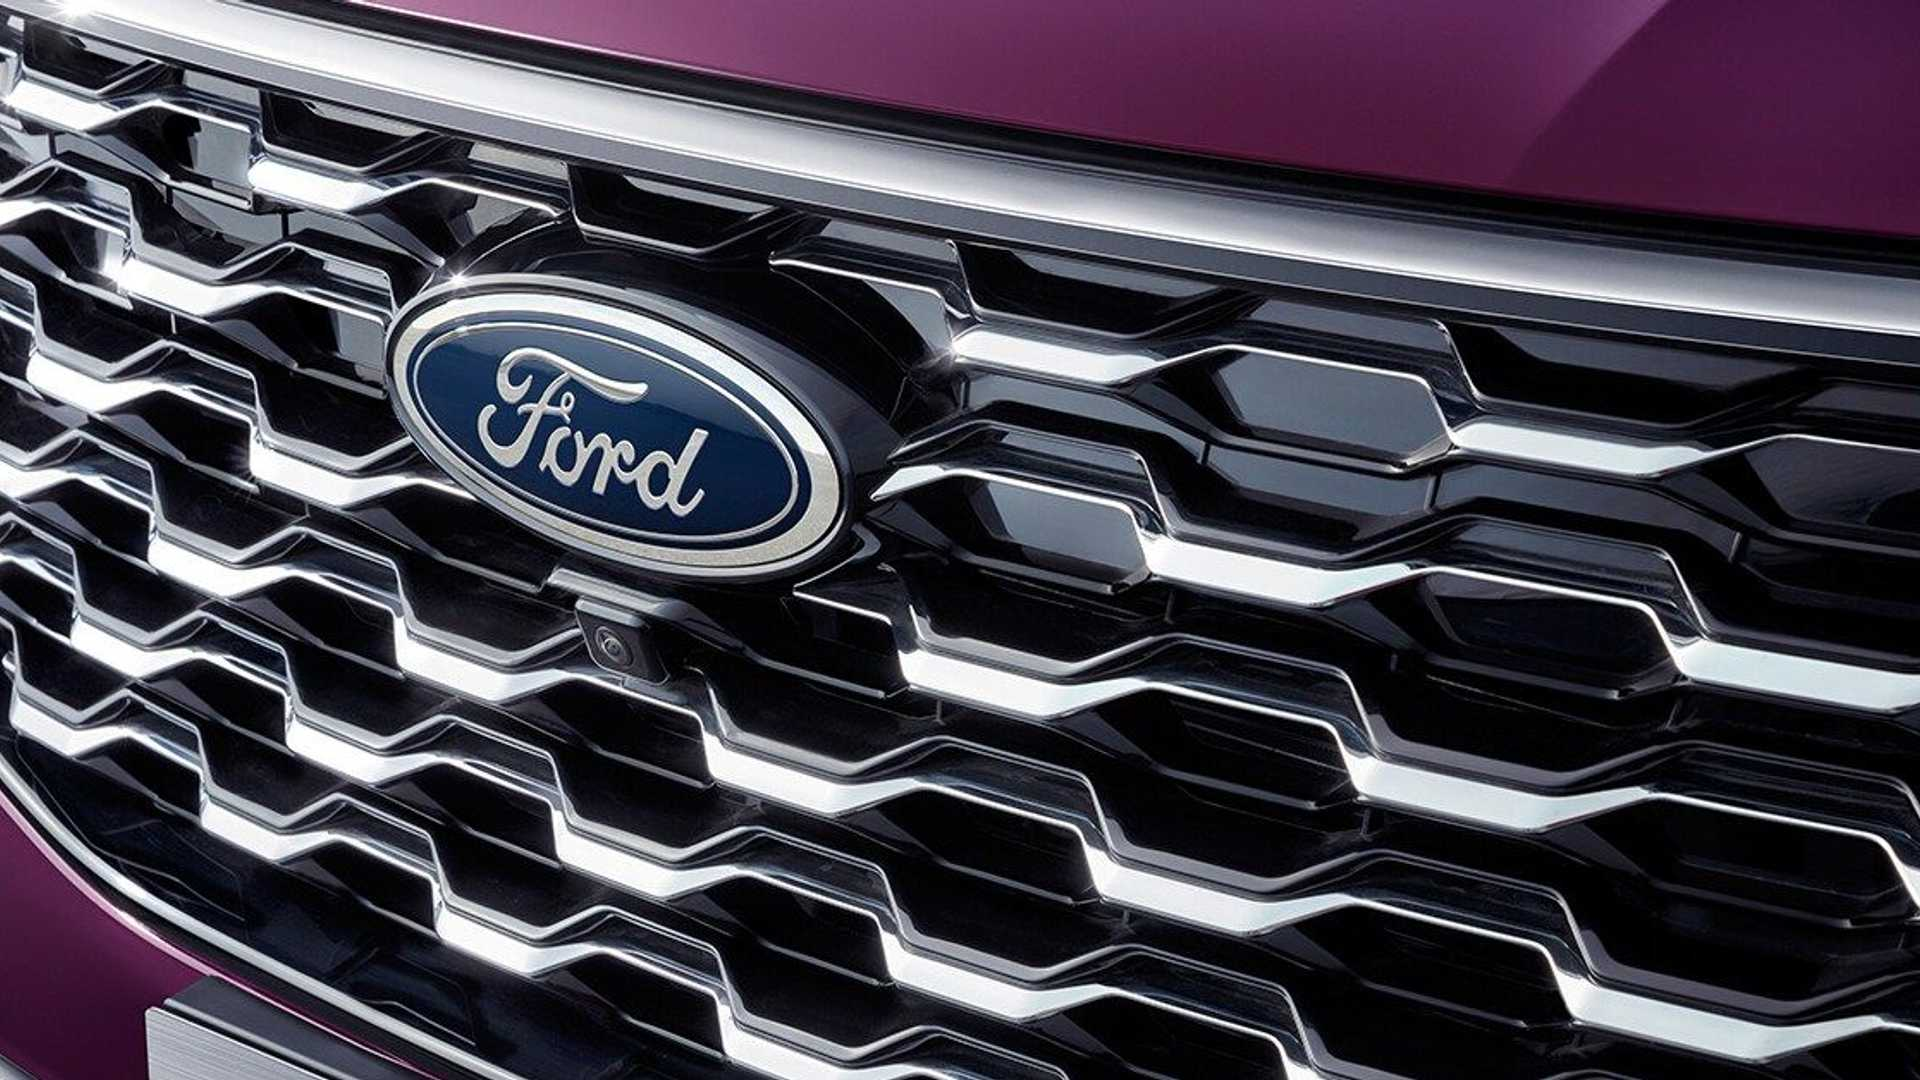 جلوپنجره شاسی بلند فورد اکویتور / Ford Equator SUV رنگ بنفش